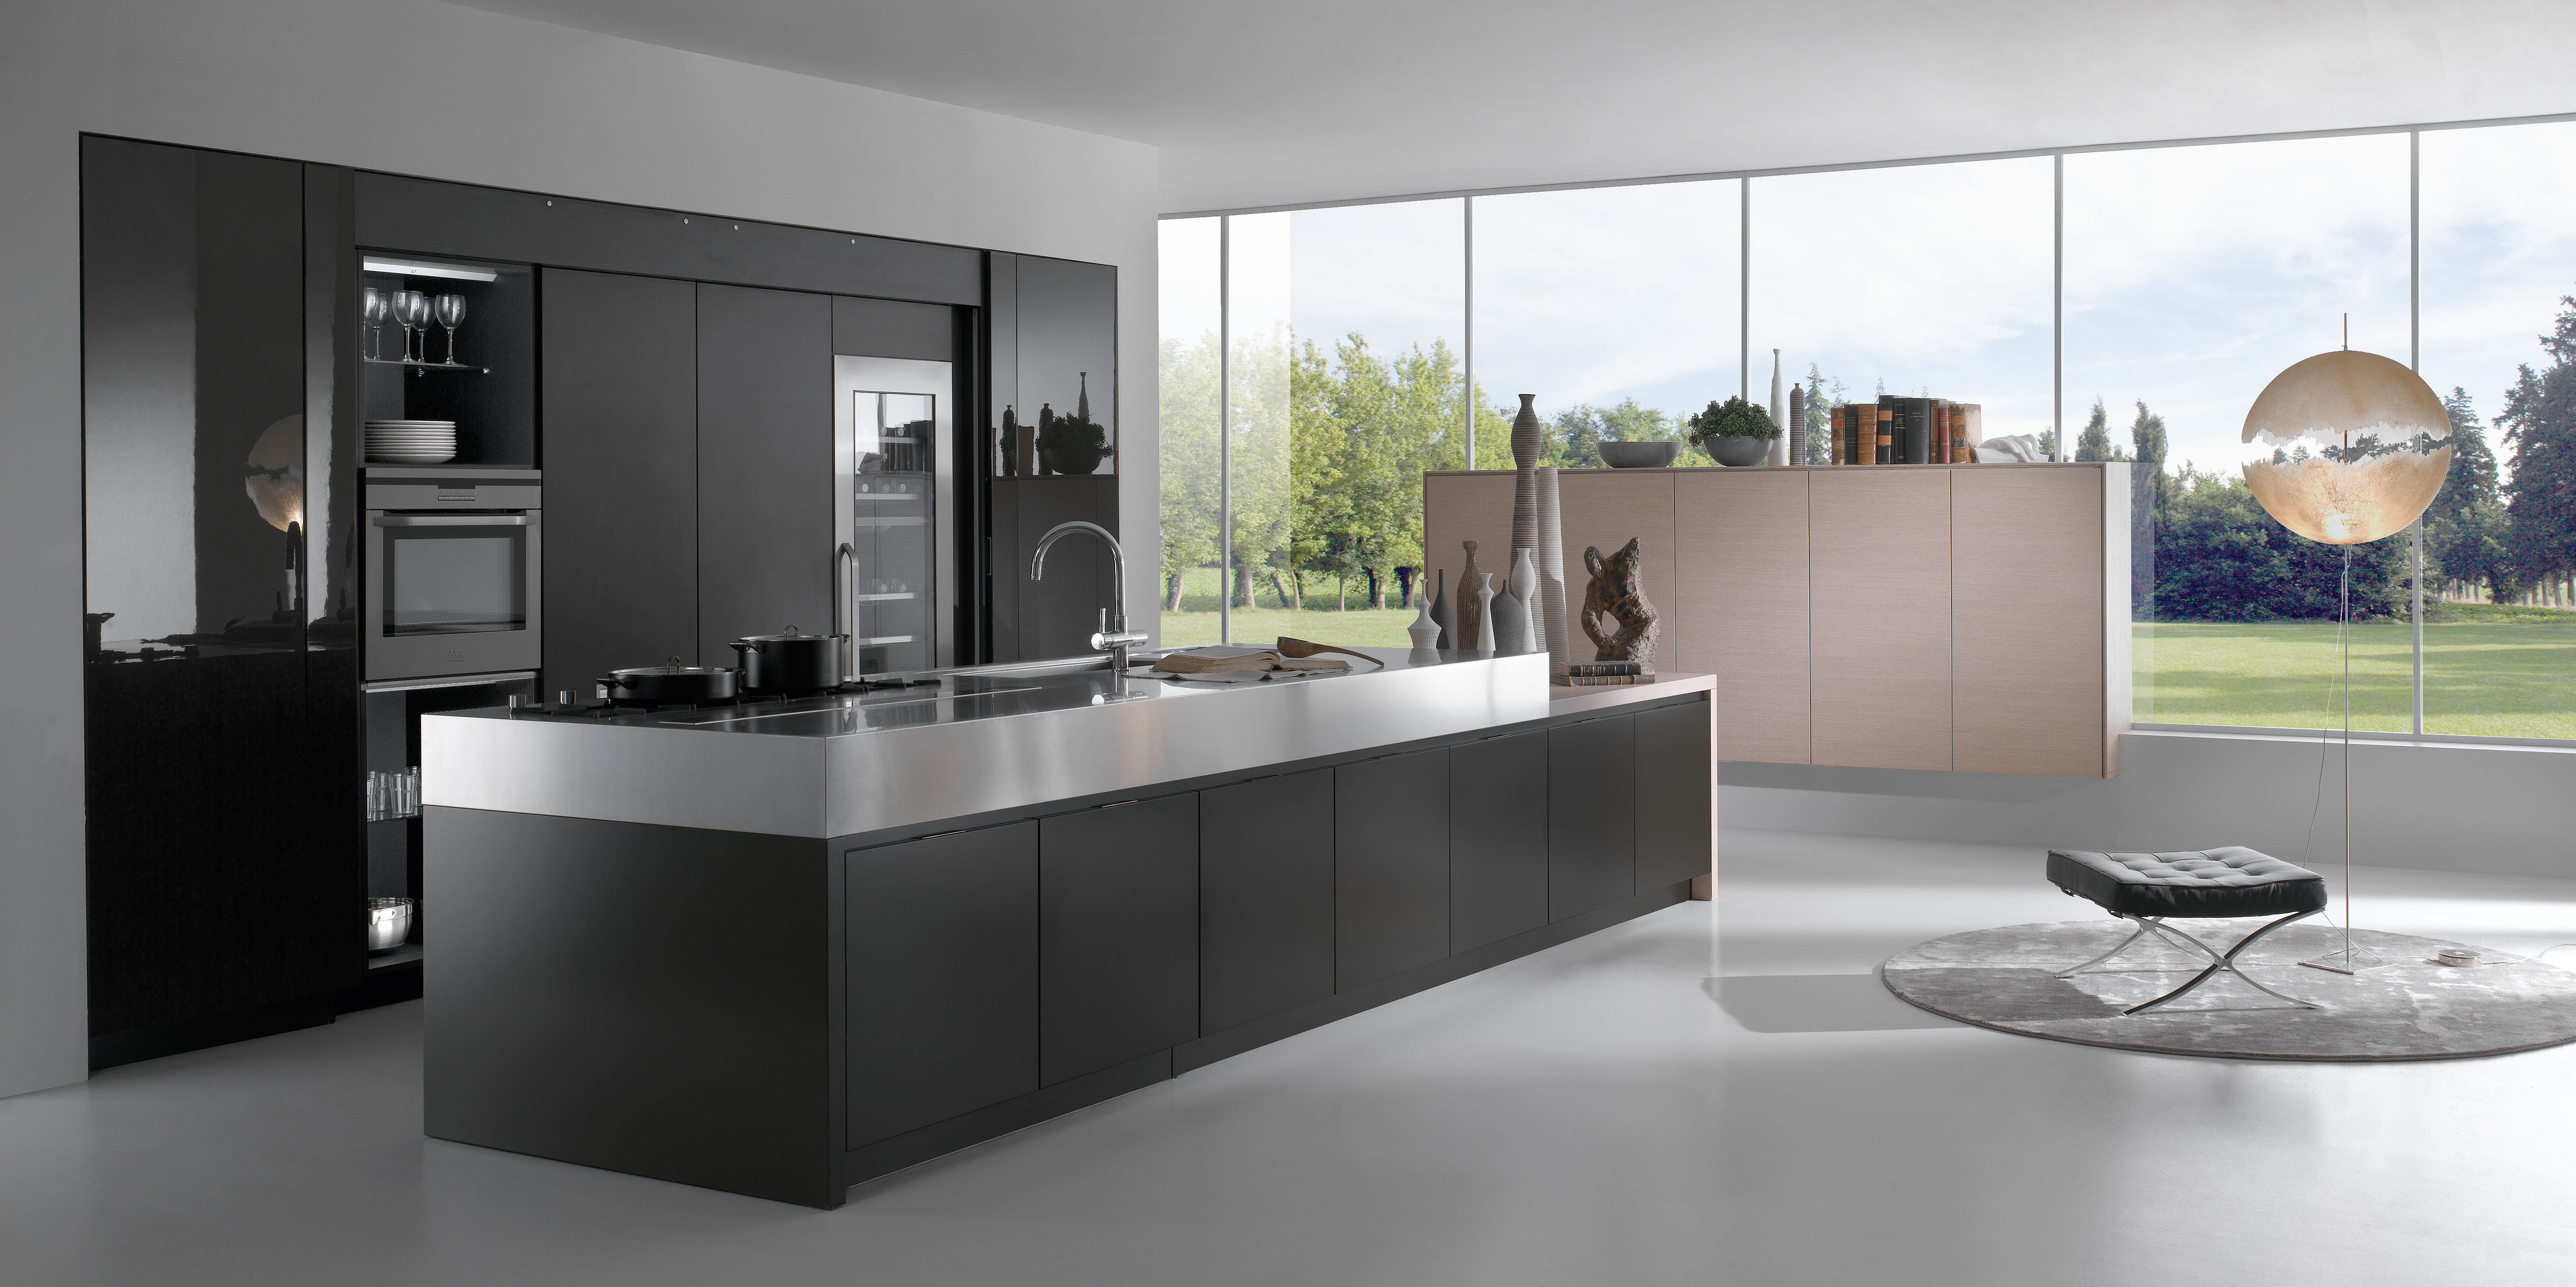 cuisine contemporaine haut de gamme avec grand ilot. Black Bedroom Furniture Sets. Home Design Ideas